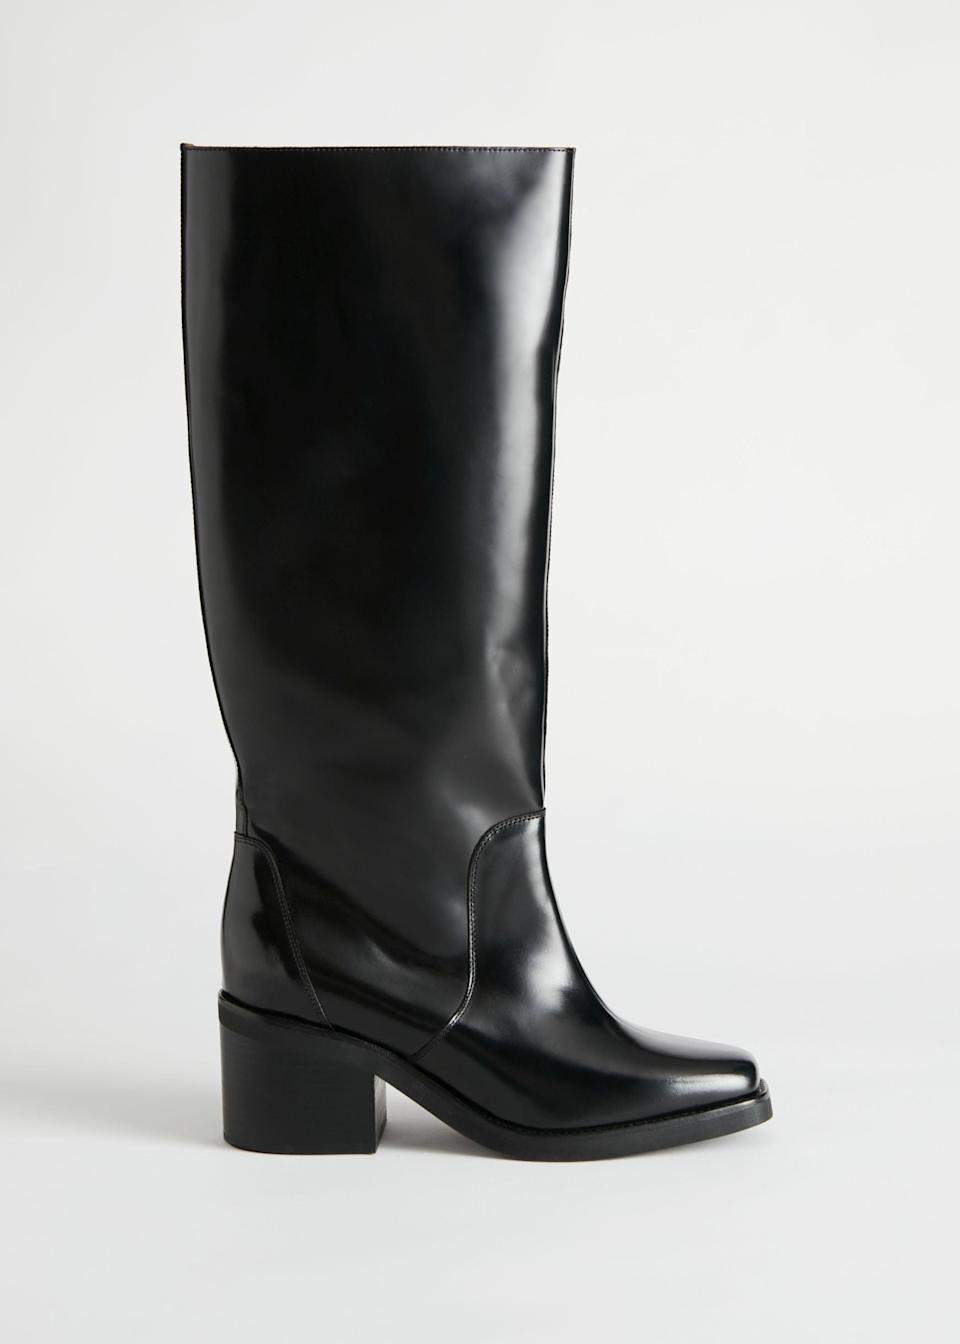 """<br><br><strong>& Other Stories</strong> Square Toe Knee High Leather Boots, $, available at <a href=""""https://go.skimresources.com/?id=30283X879131&url=https%3A%2F%2Fwww.stories.com%2Fen_usd%2Fshoes%2Fboots%2Fproduct.square-toe-knee-high-leather-boots-black.0797200001.html"""" rel=""""nofollow noopener"""" target=""""_blank"""" data-ylk=""""slk:& Other Stories"""" class=""""link rapid-noclick-resp"""">& Other Stories</a>"""